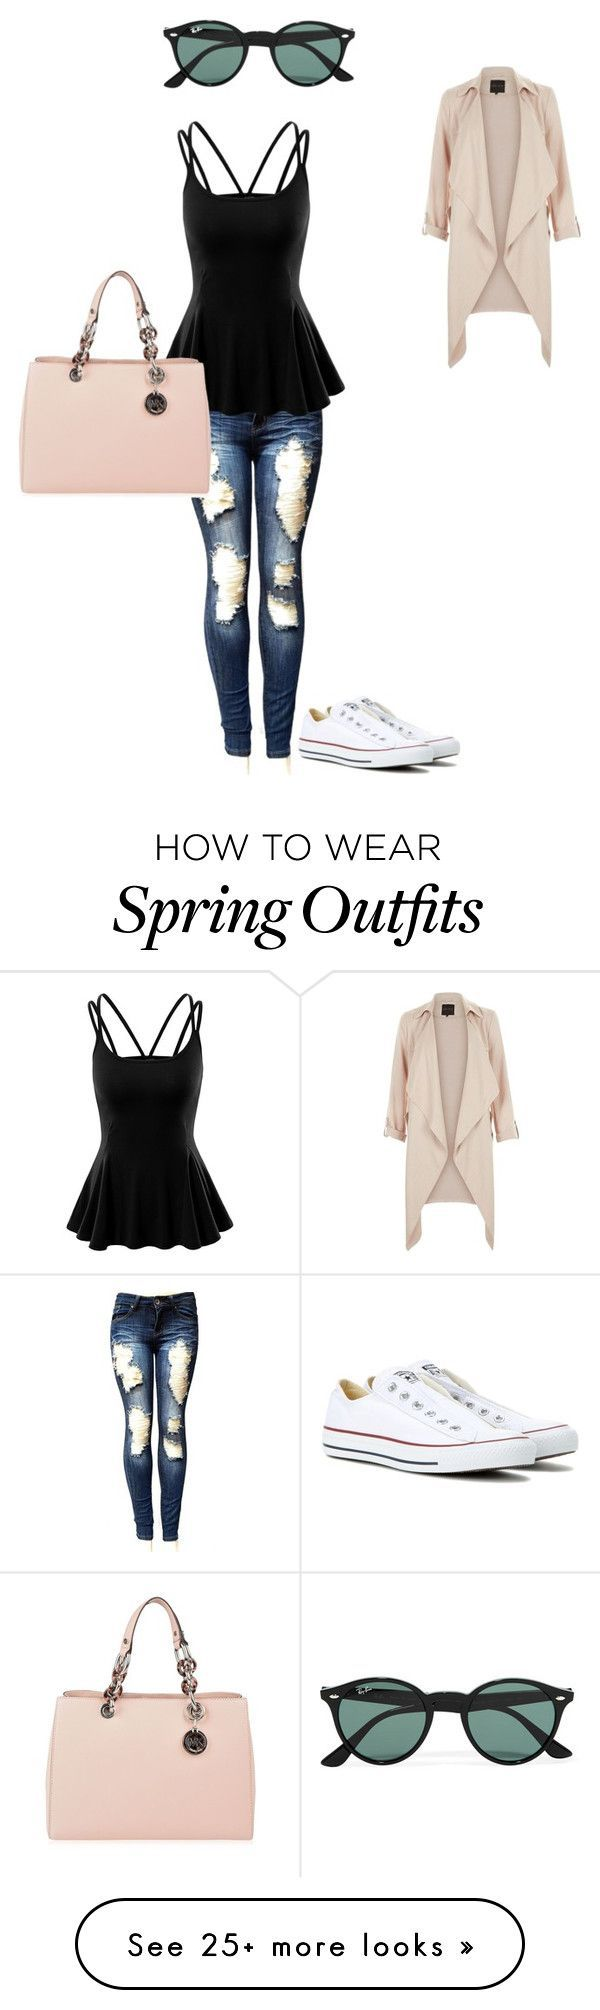 Spring Outfits Sets